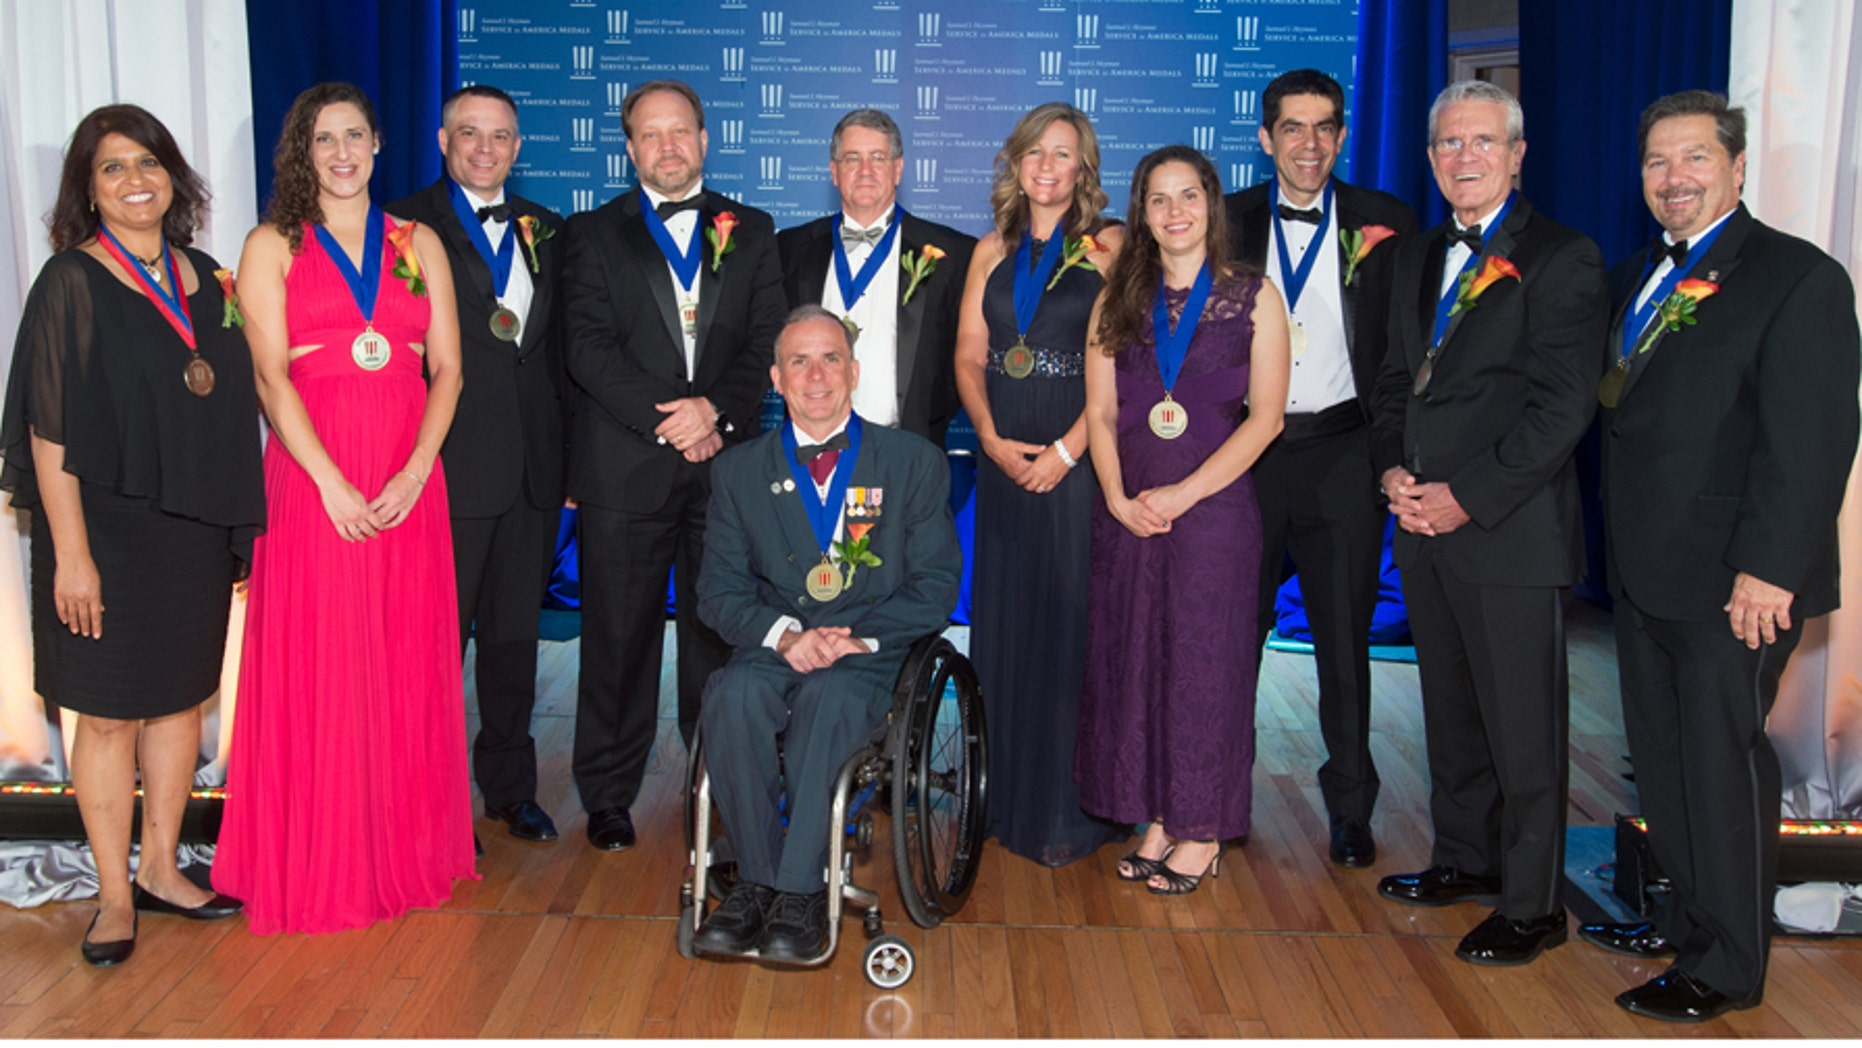 Sept. 27, 2017: The 2017 Samuel J. Heyman Service to America Medals, Washington, D.C.